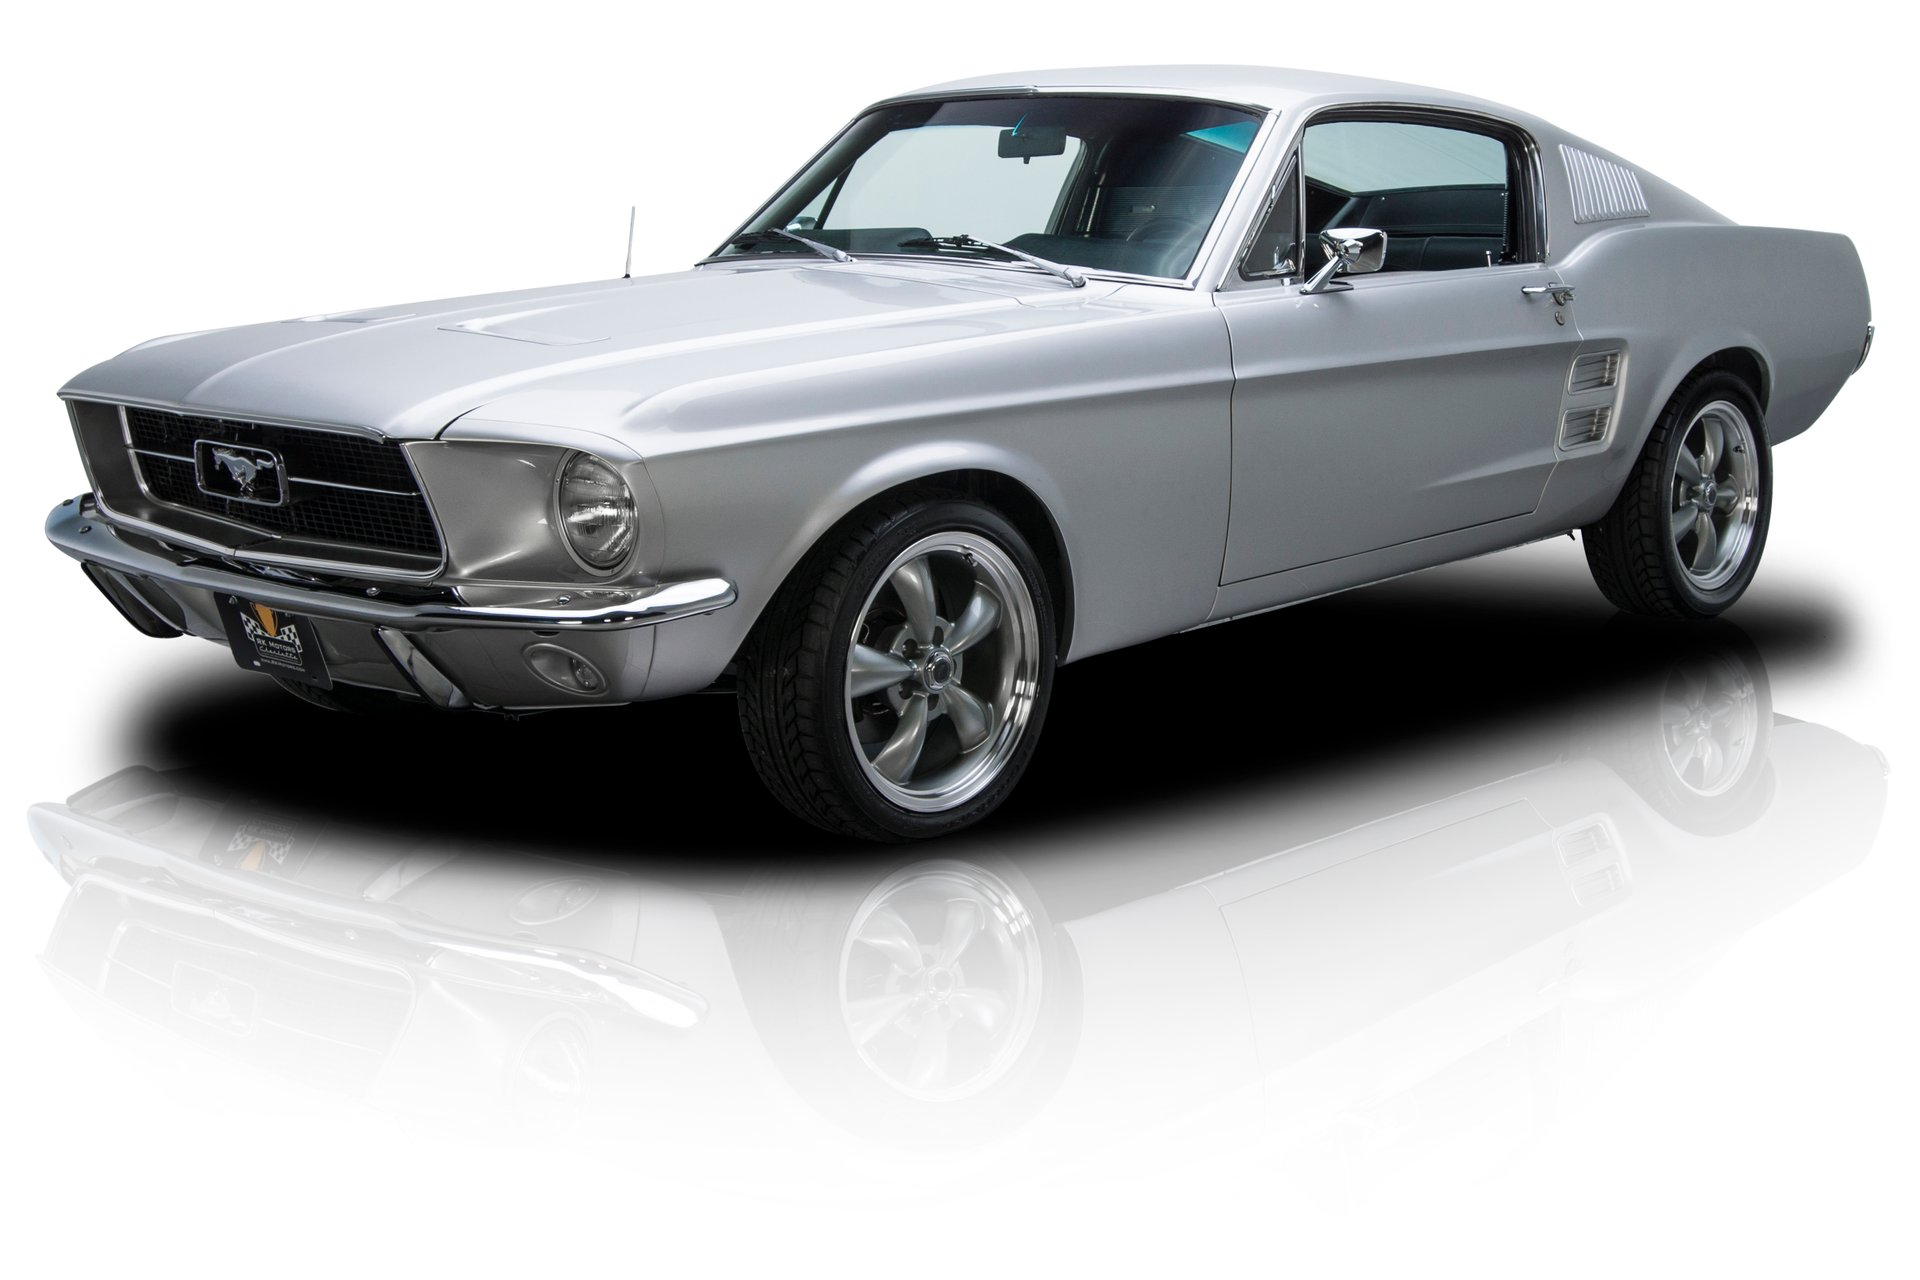 hight resolution of frame off built mustang 2 2 fastback efi 289 v8 3 speed automatic ps a c discs